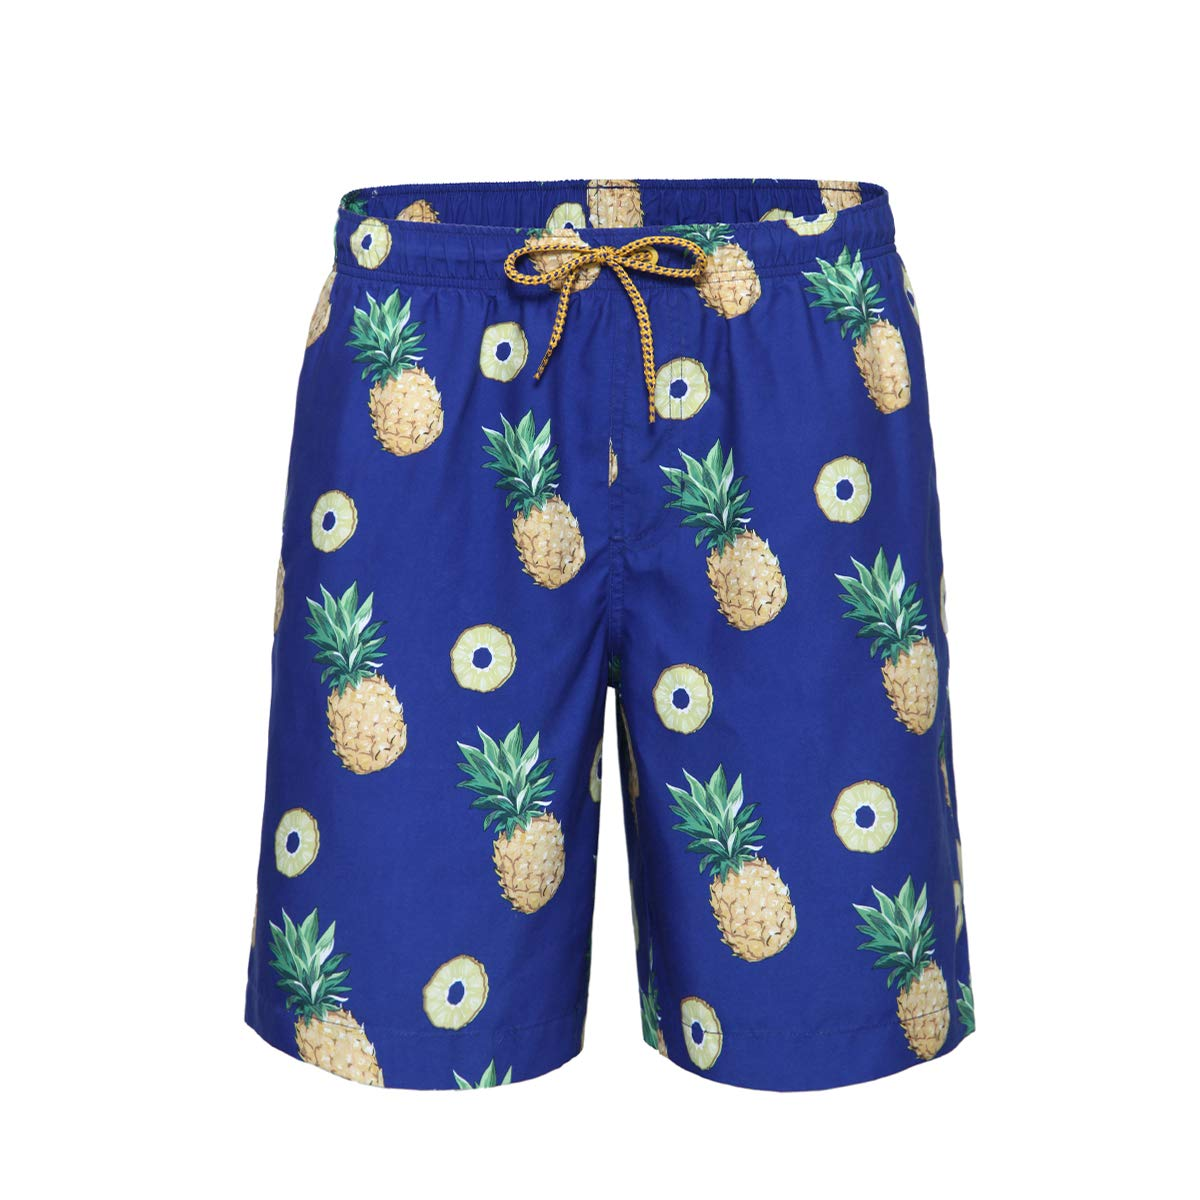 d5d1761e9cea4 Rokka&Rolla Men's Quick Dry Drawstring Waist Swim Trunks Board Shorts with  Mesh Lining product image